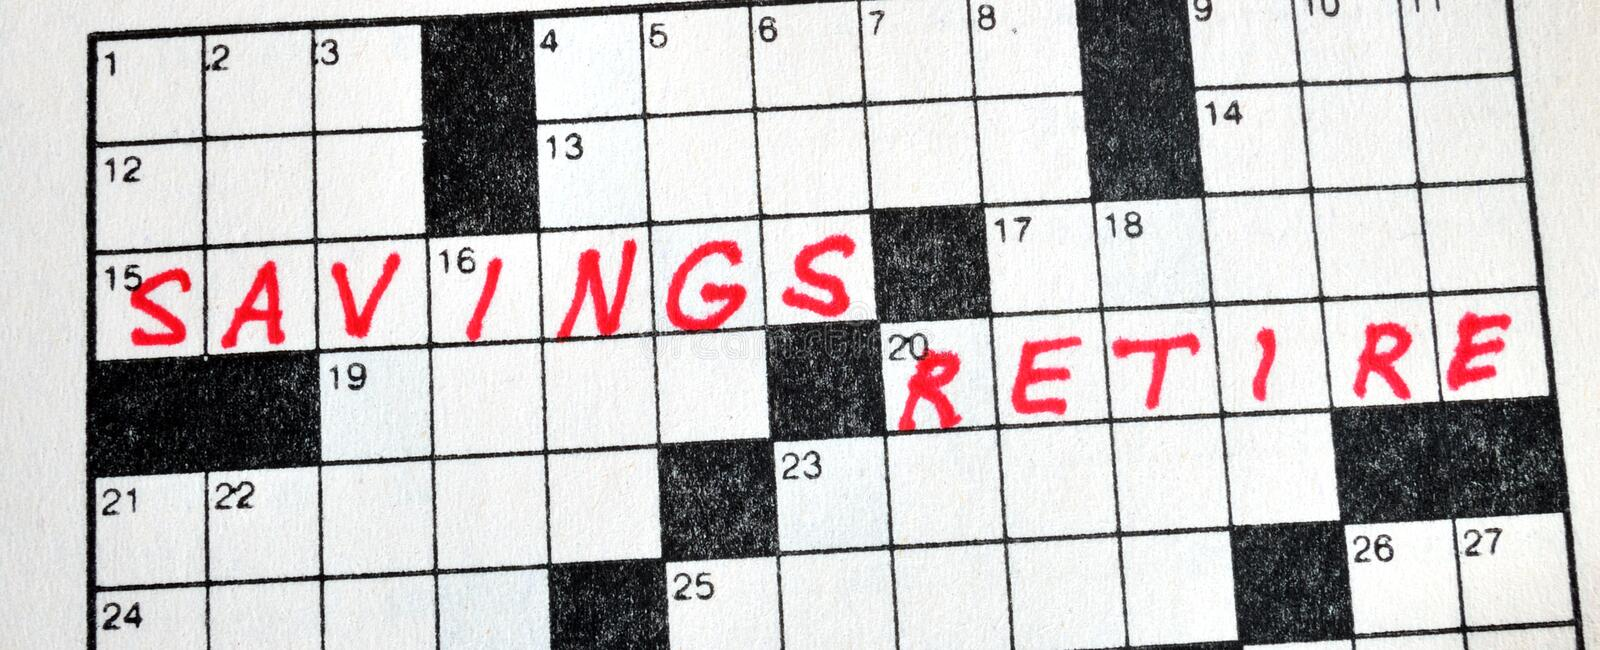 Download The Words Savings And Retire On Crossword Puzzle Stock Image - Image: 24488071